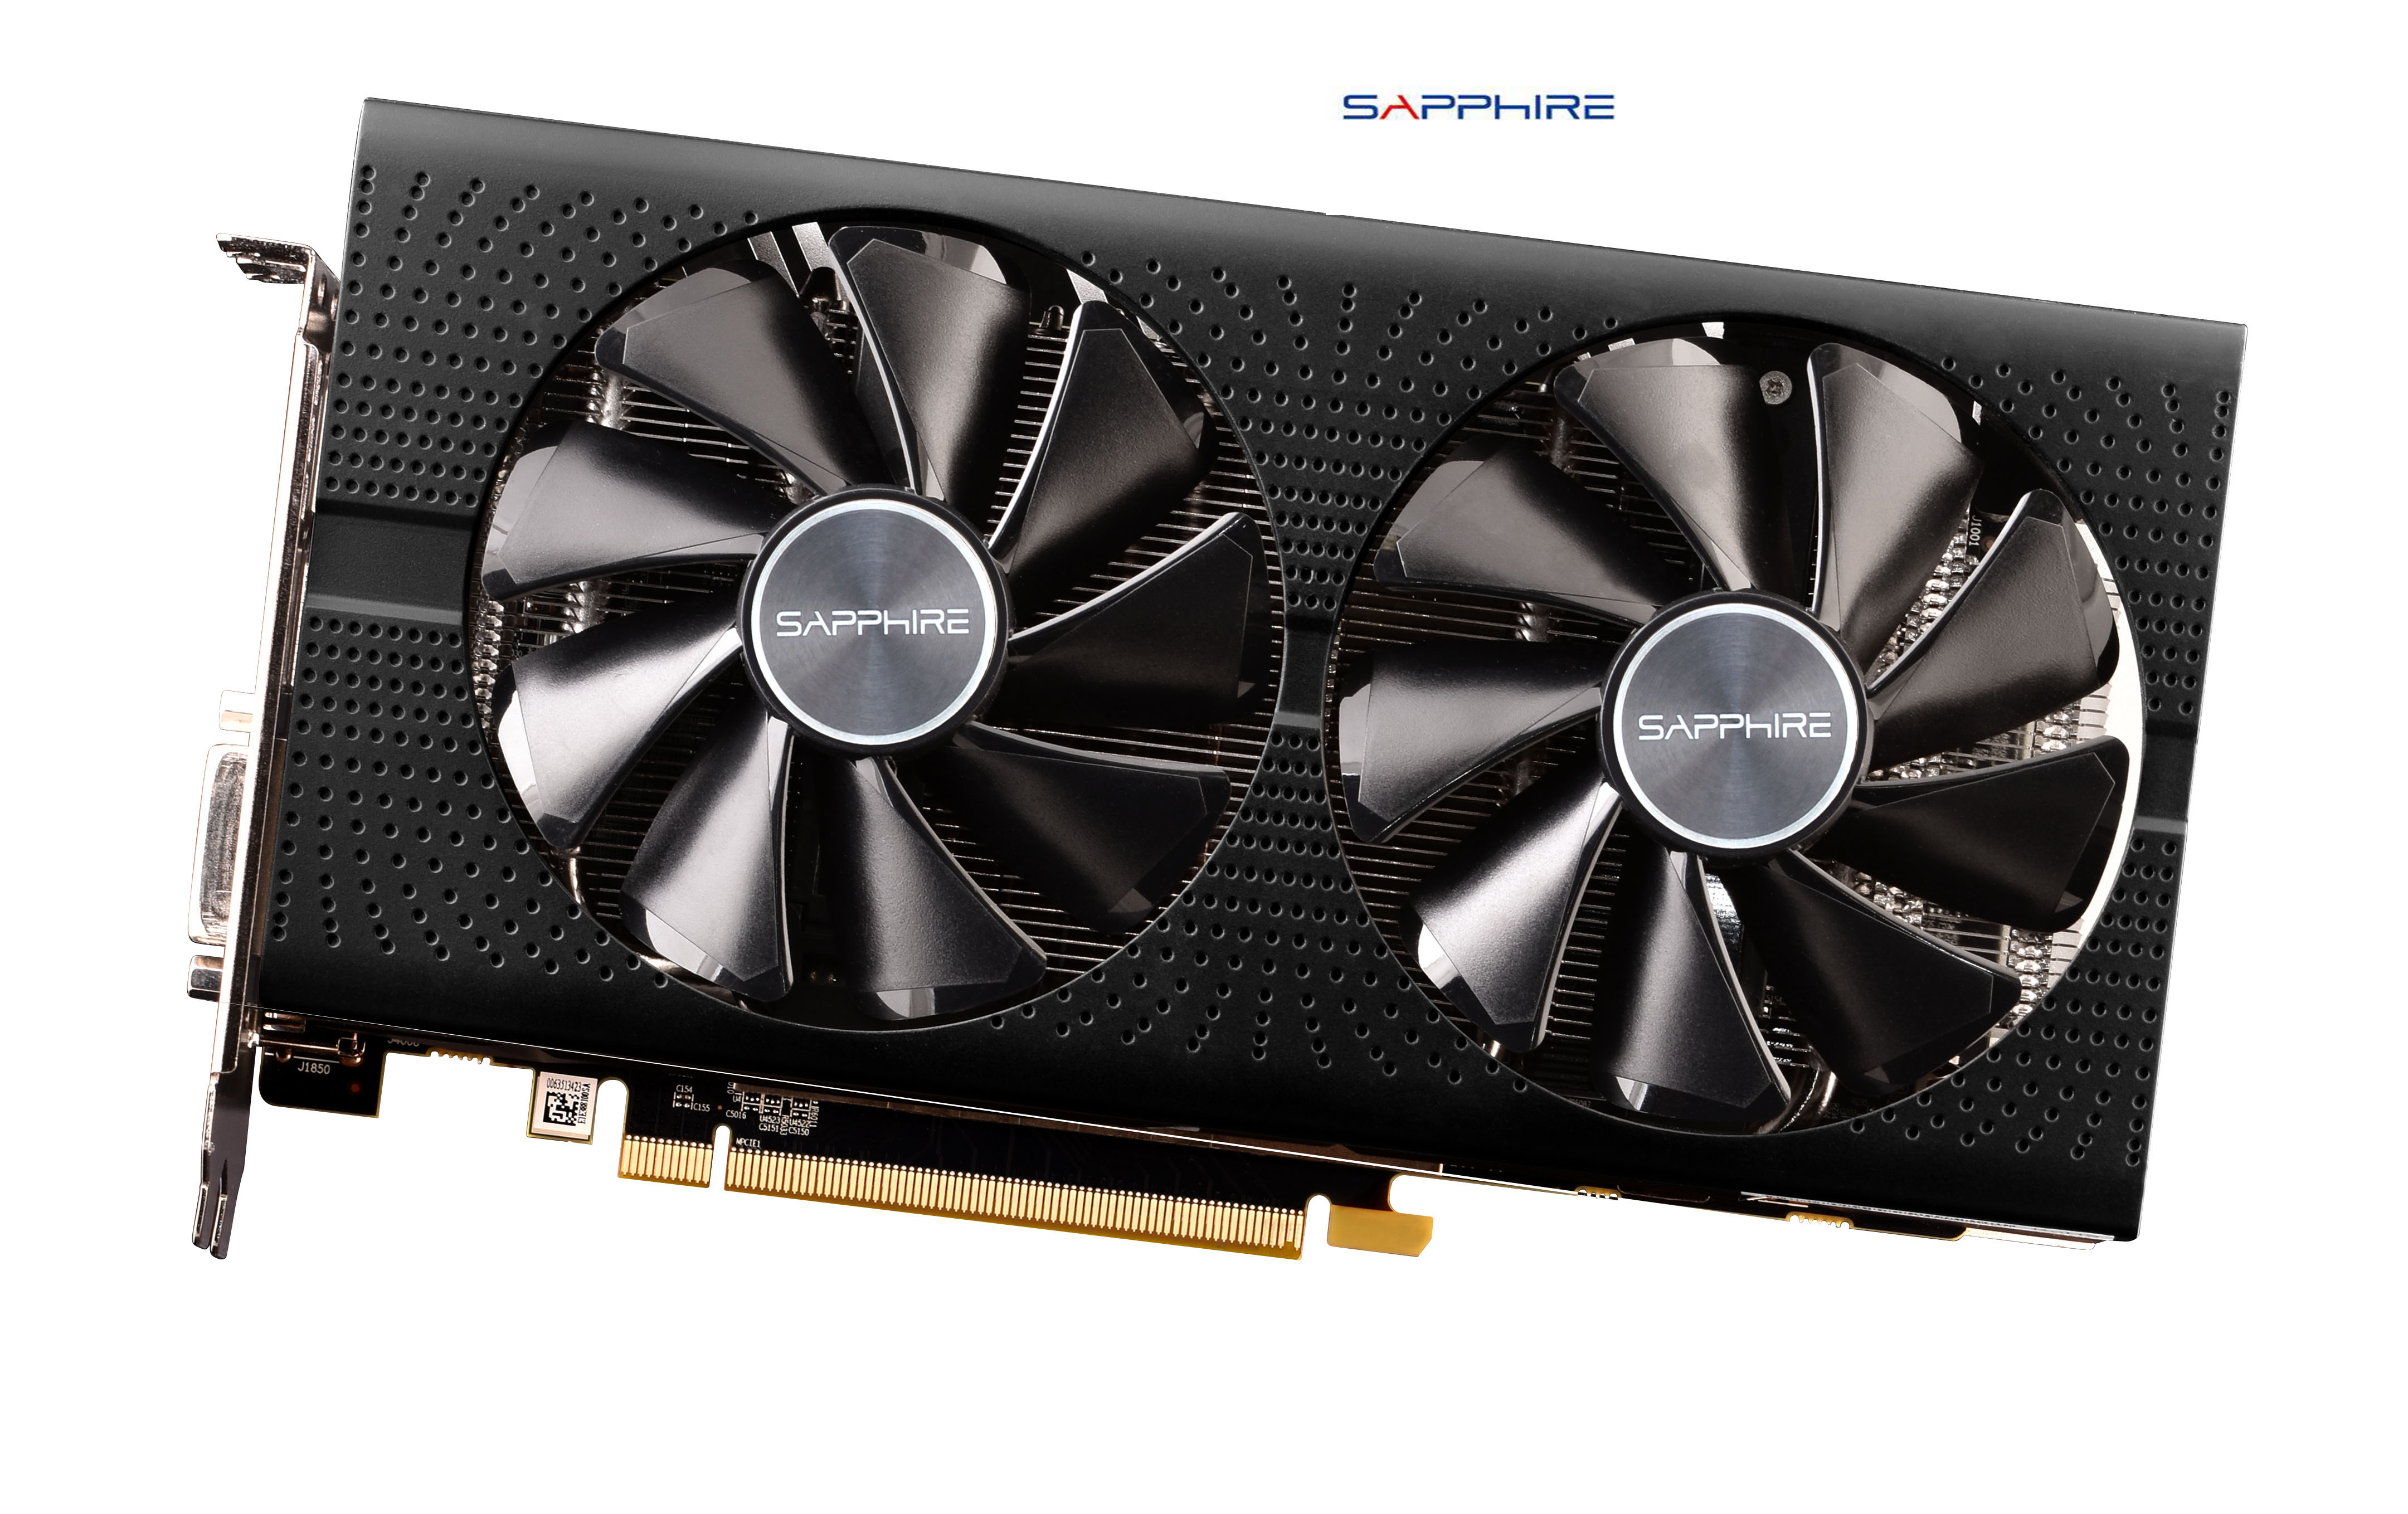 Used,SAPPHIRE Video Card RX 580 4GB 256Bit GDDR5 Graphics Cards For AMD RX 500 Series VGA Cards RX580 (2048 Version)